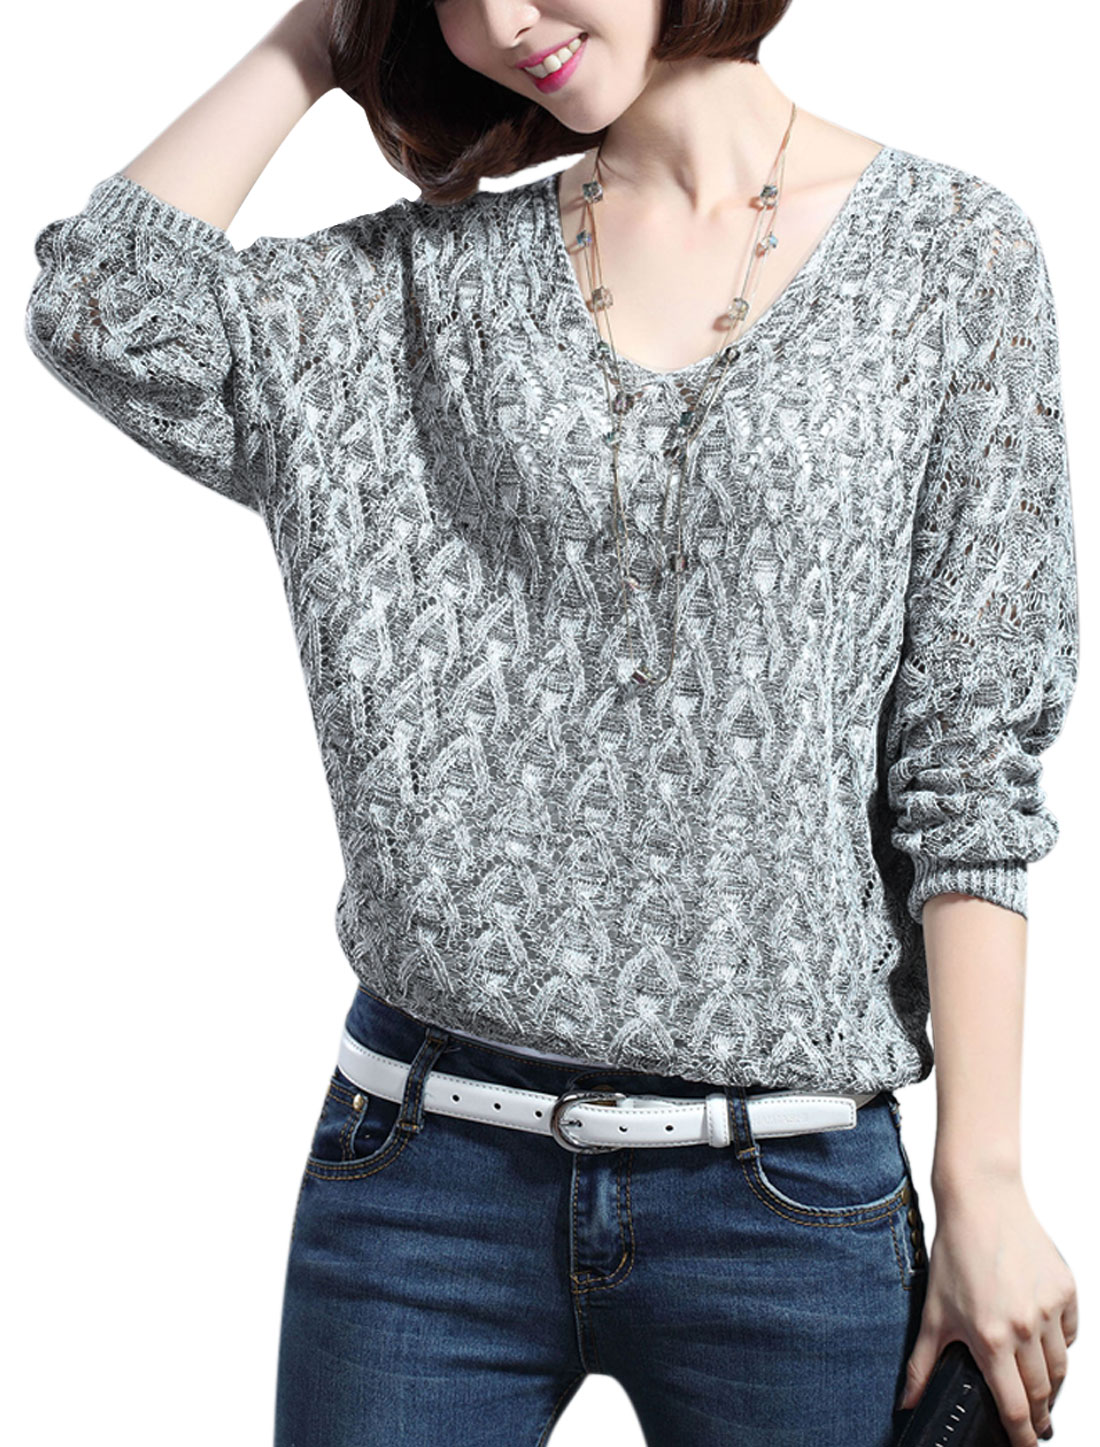 Lady Batwing Sleeve Cable Knit w Hollow Out Design Knit Shirt Gray S